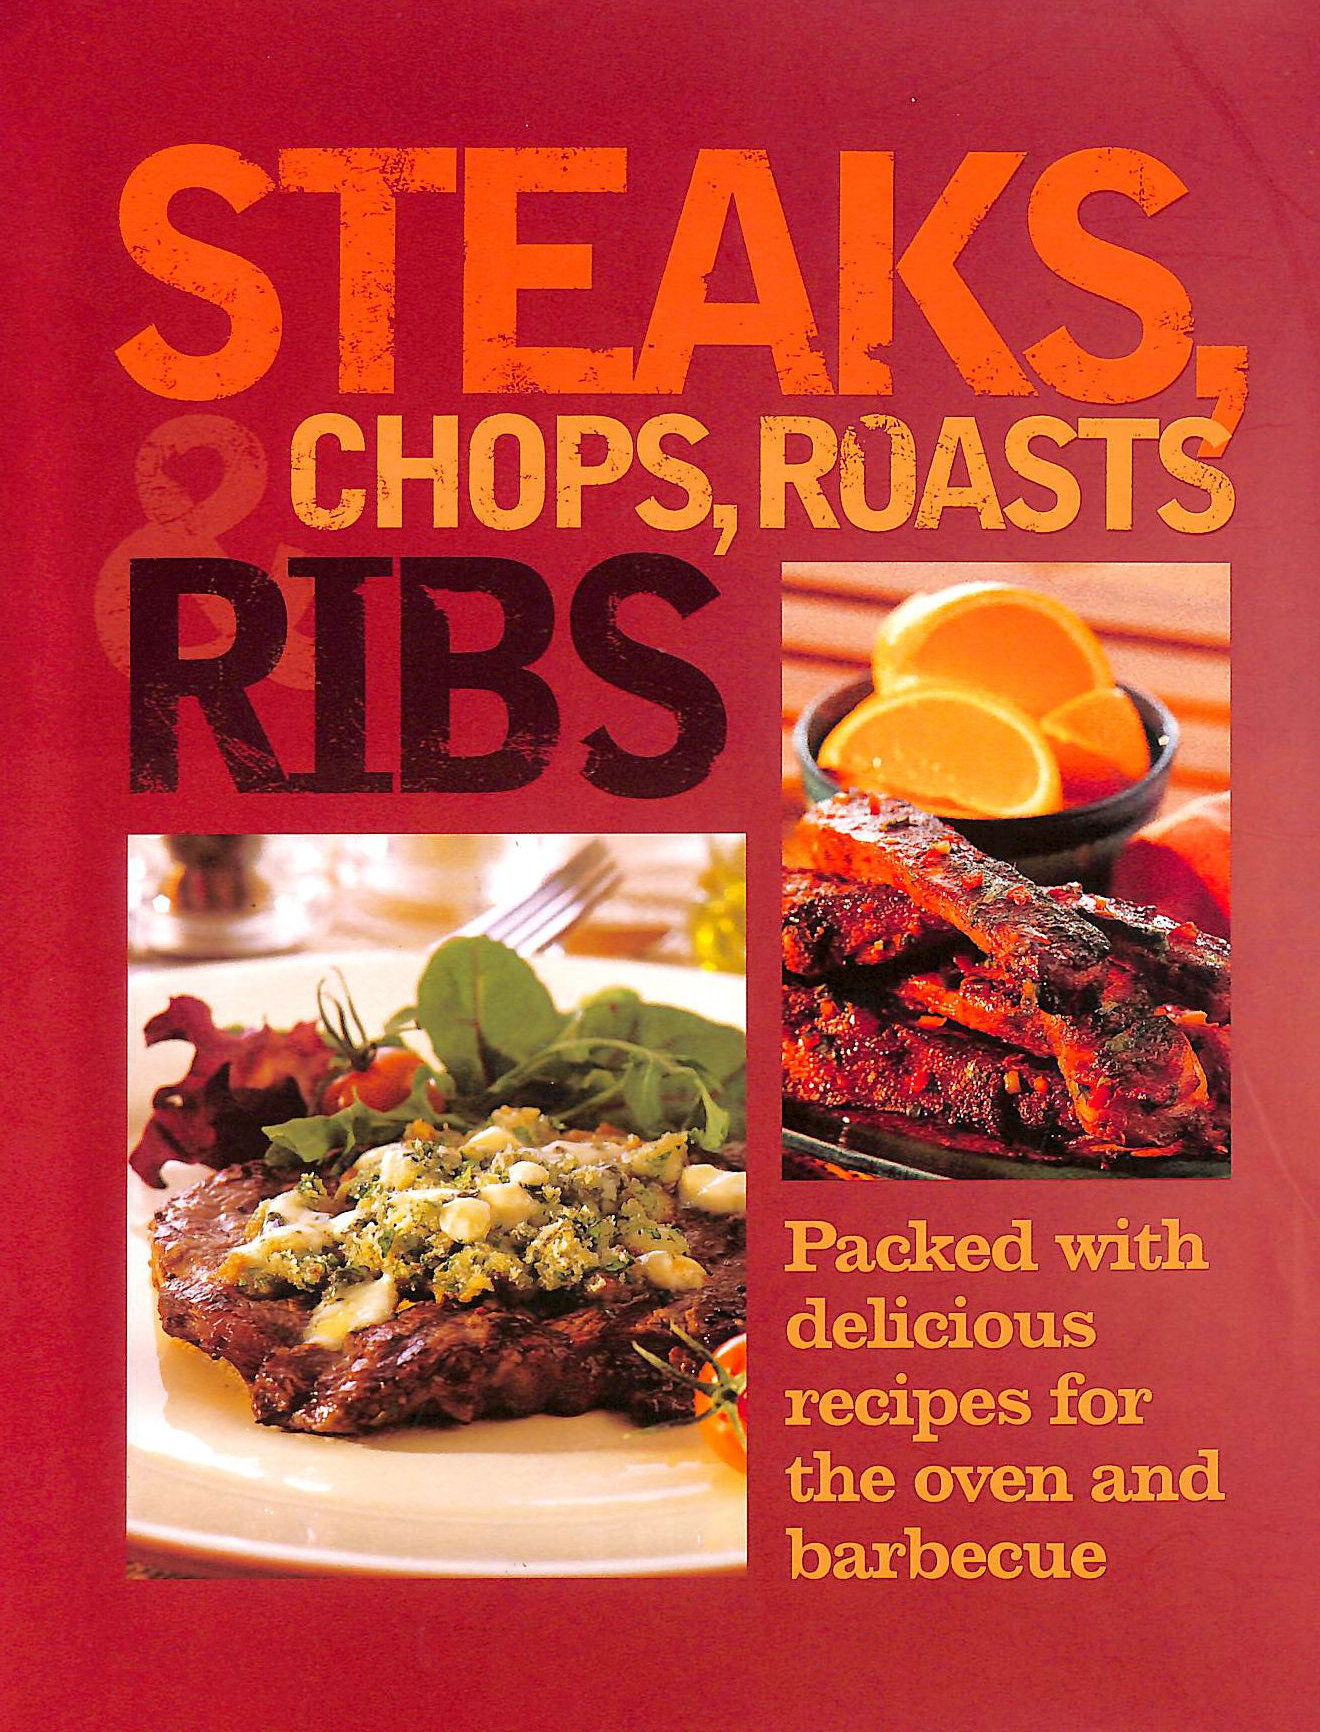 Image for Steaks, Chops, Roasts and Ribs